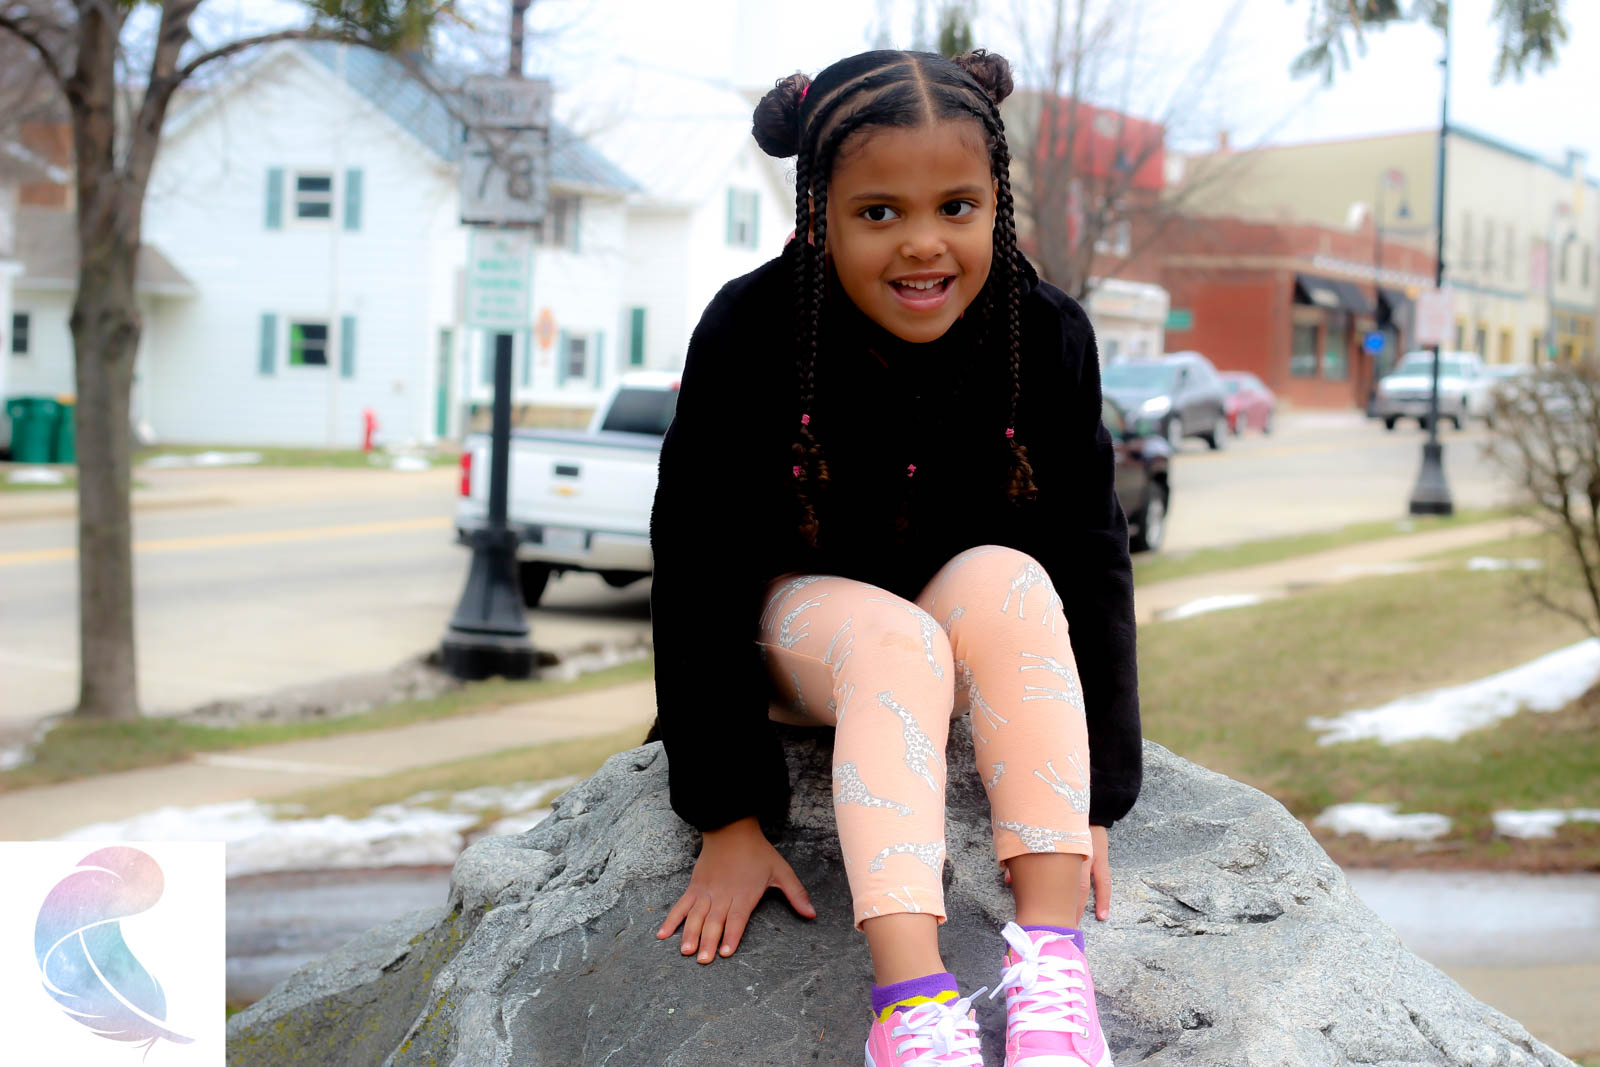 Braids and Buns protective style plus exploring Mount Horeb, WI